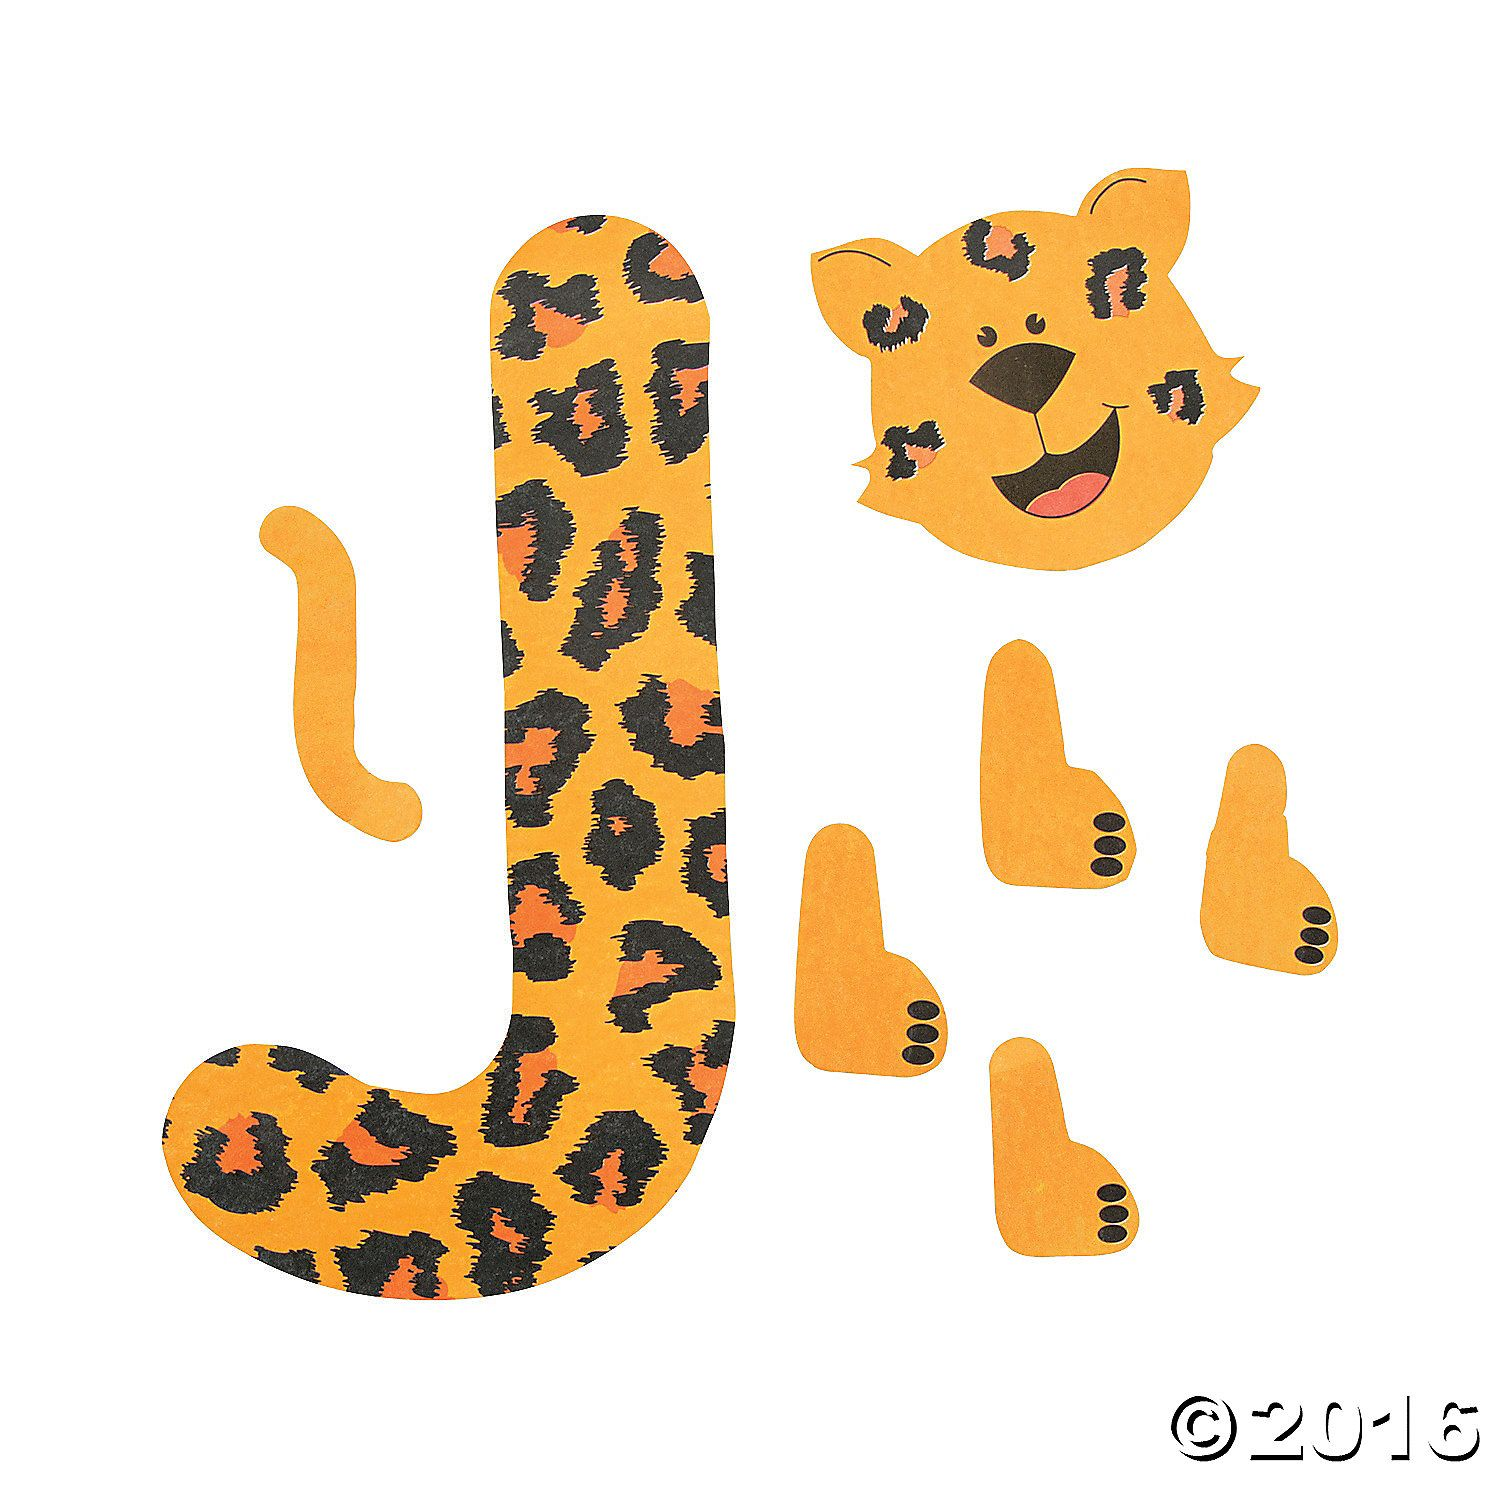 J is for jaguar letter j craft kit 48 8071 a01 1500 1500 for Letter j template preschool